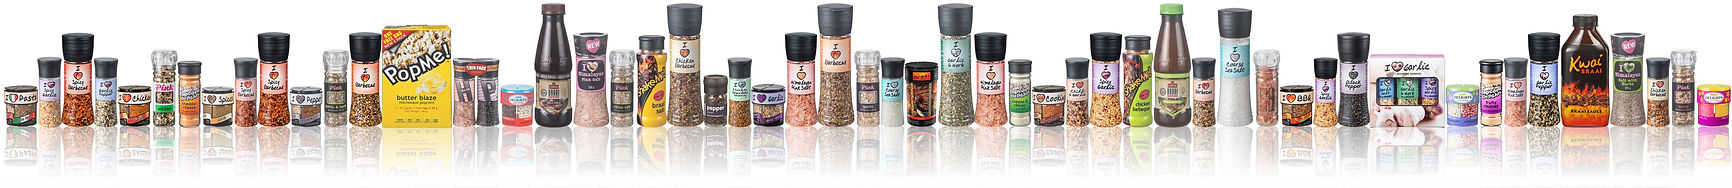 Cape Foods' range of Herbs, Spices and Seasoning products